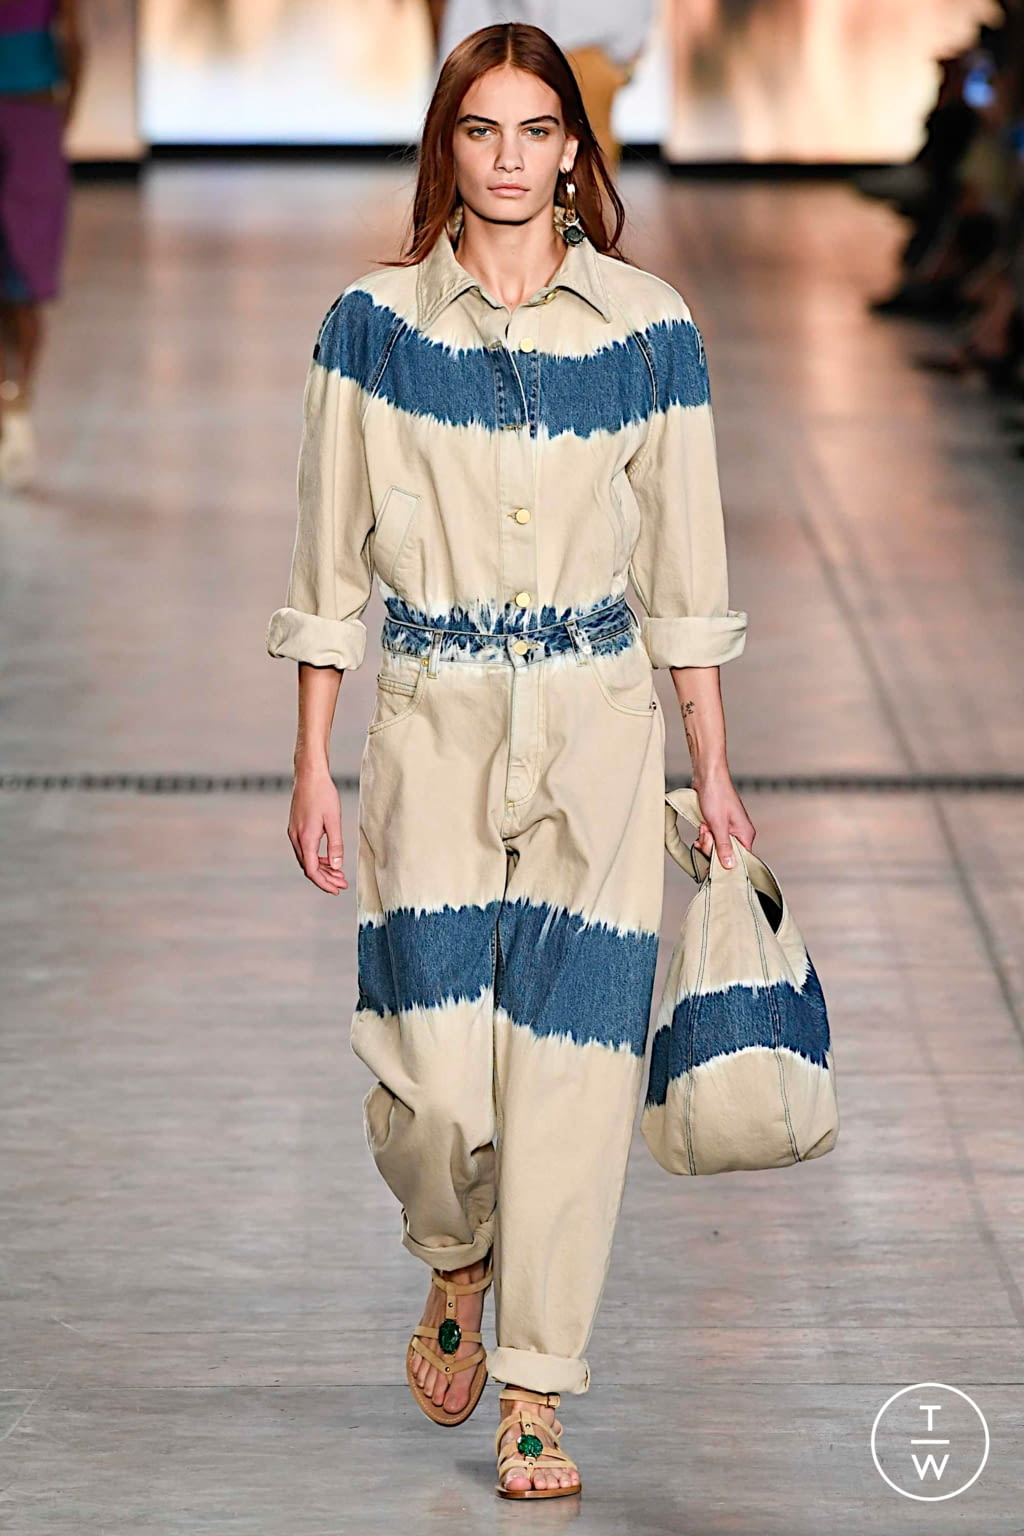 Fashion Week Milan Spring/Summer 2020 look 29 de la collection Alberta Ferretti womenswear